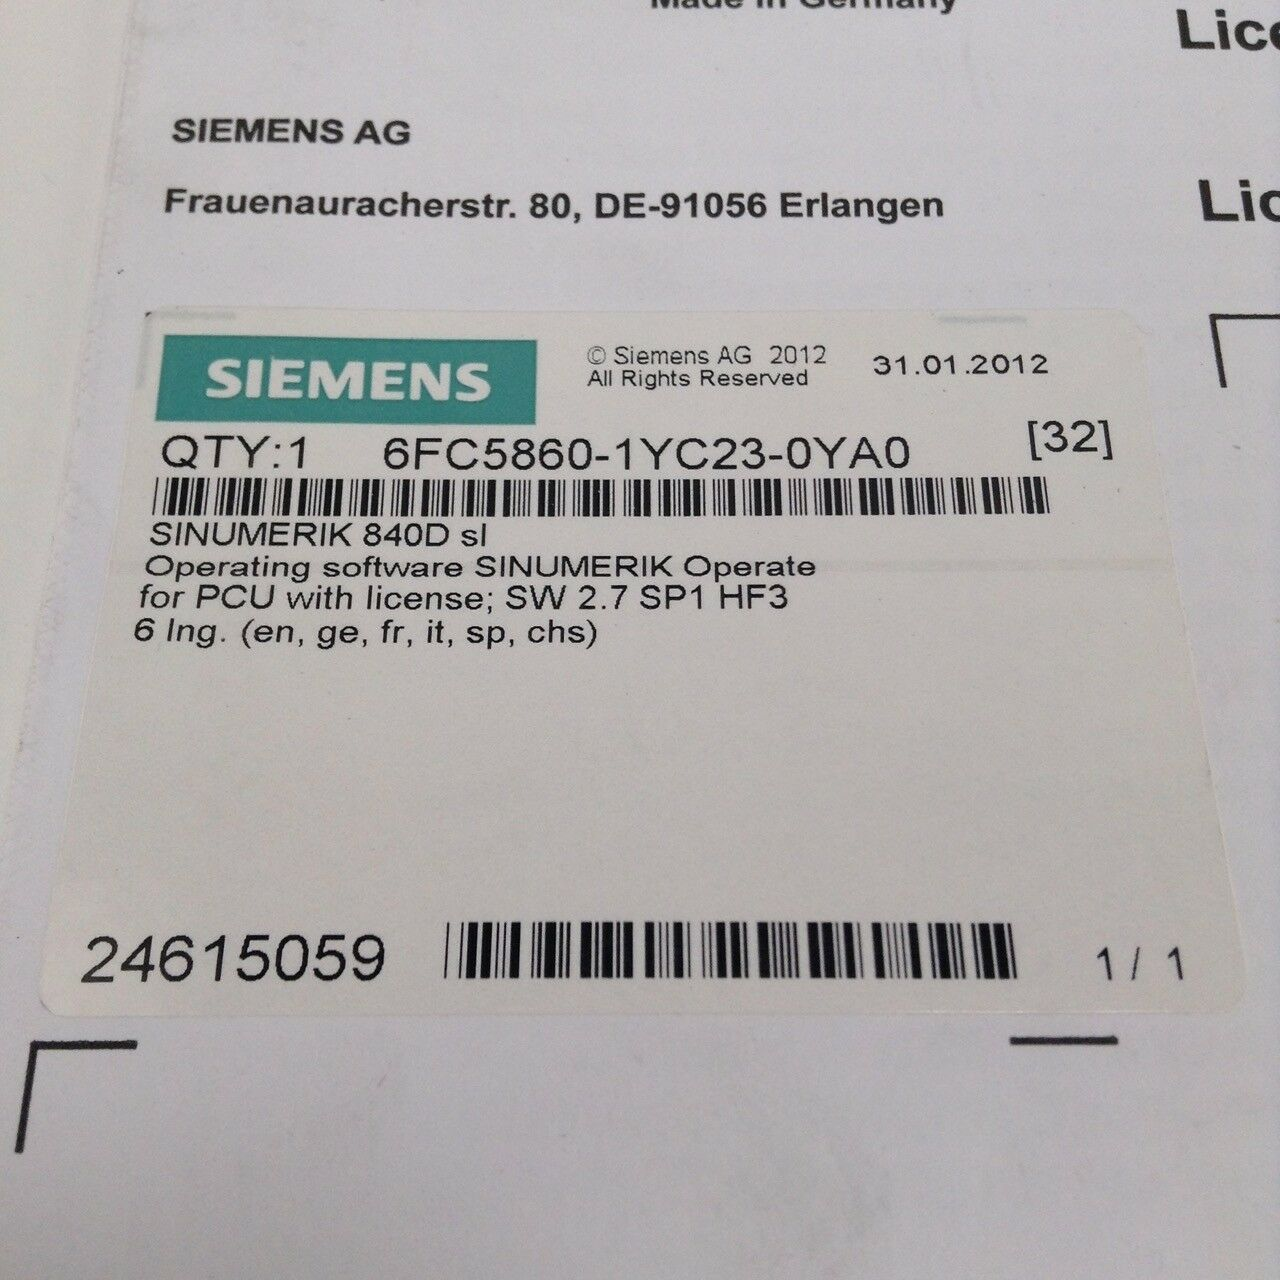 Siemens 6FC5860-1YC23-0YA0 Operating software Sinumerik for PCU New NFP Sealed